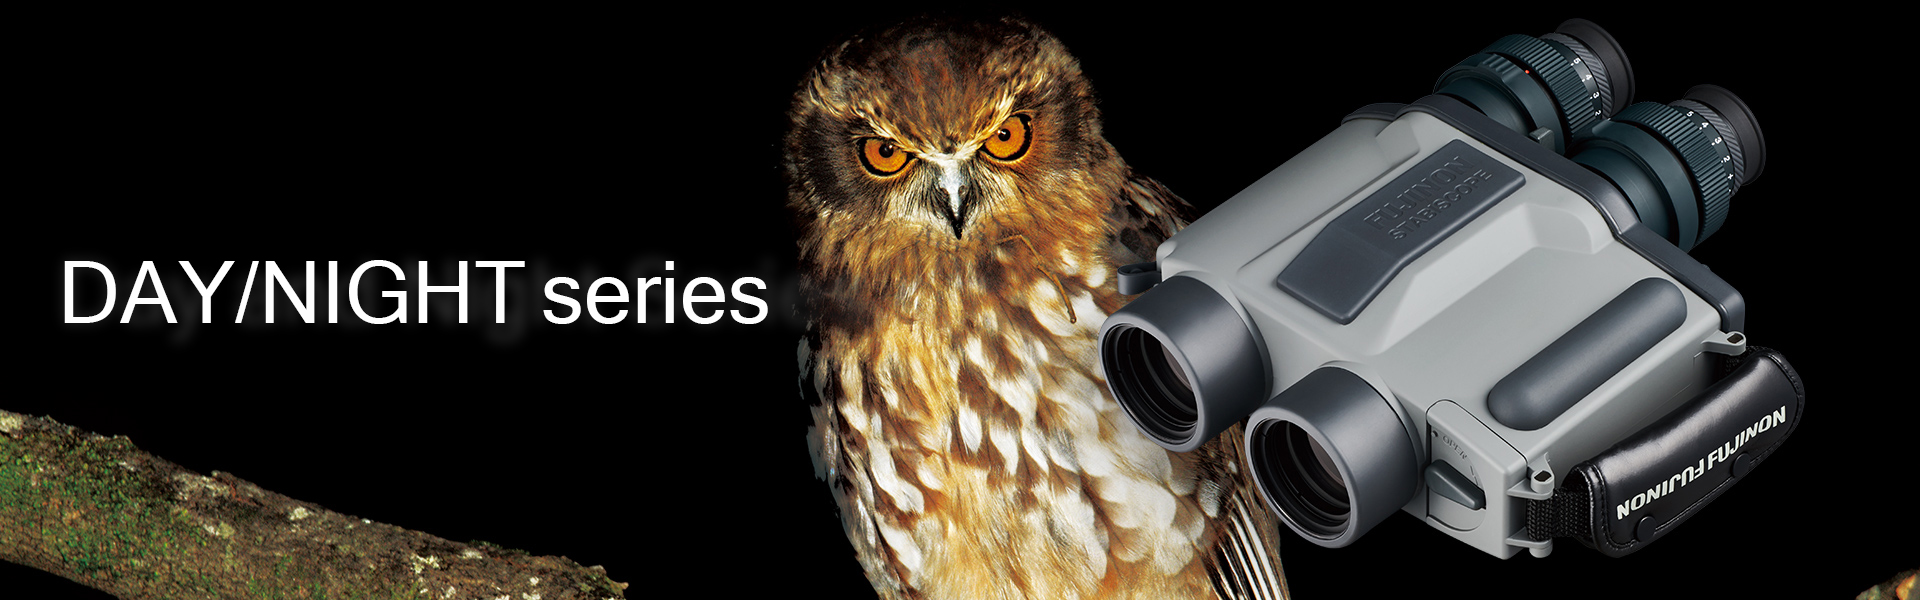 [photo] STABISCOPE S1240-D/N binoculars in front of black background with brown owl sitting on tree branch